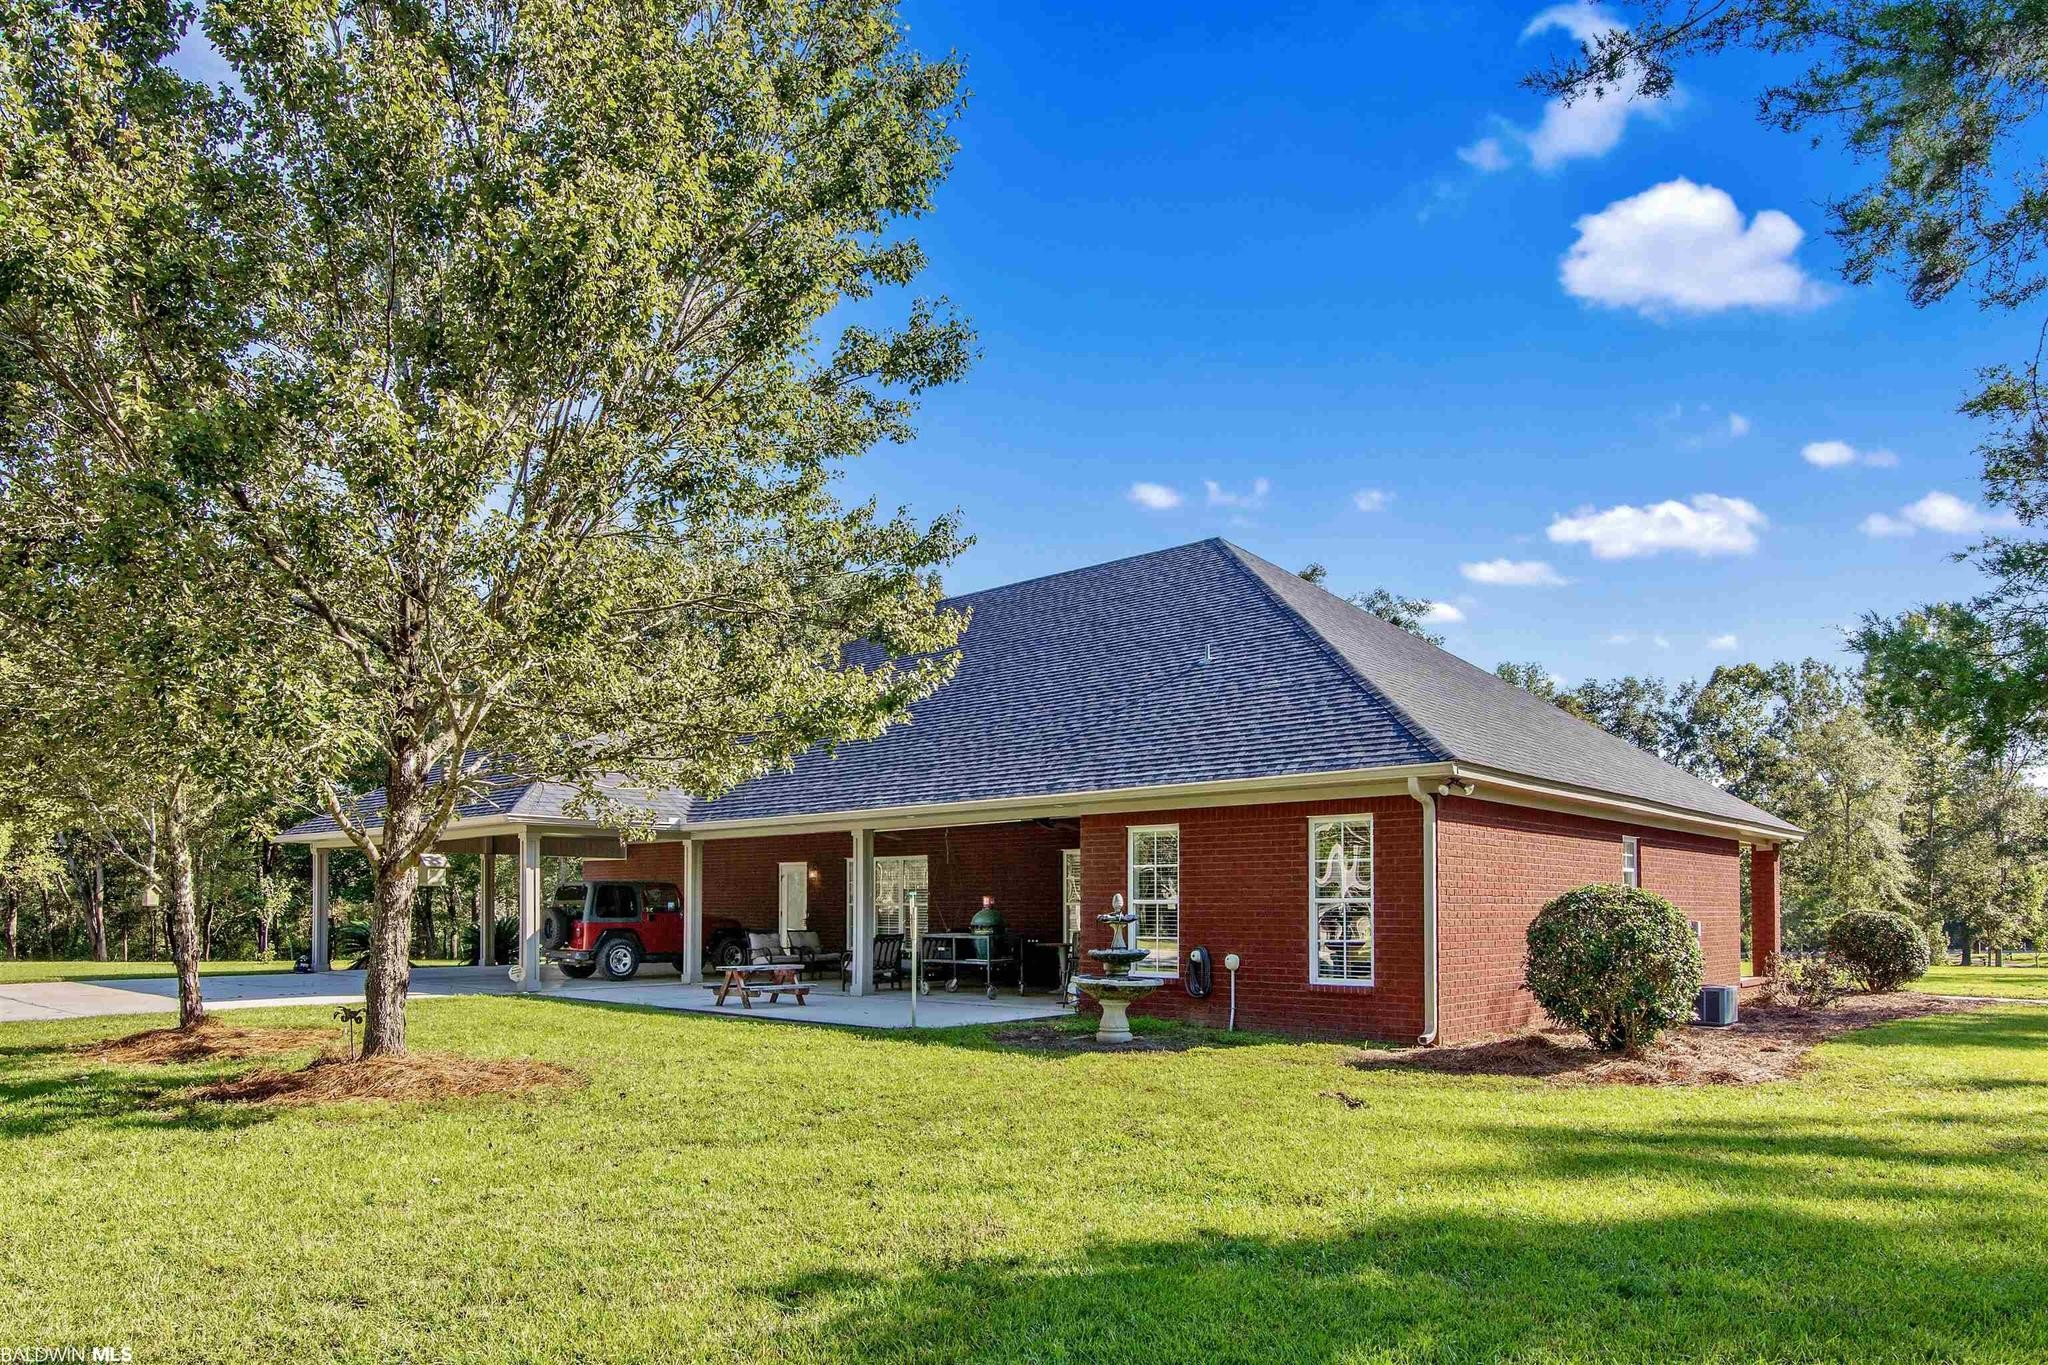 3-Bedroom House In Loxley